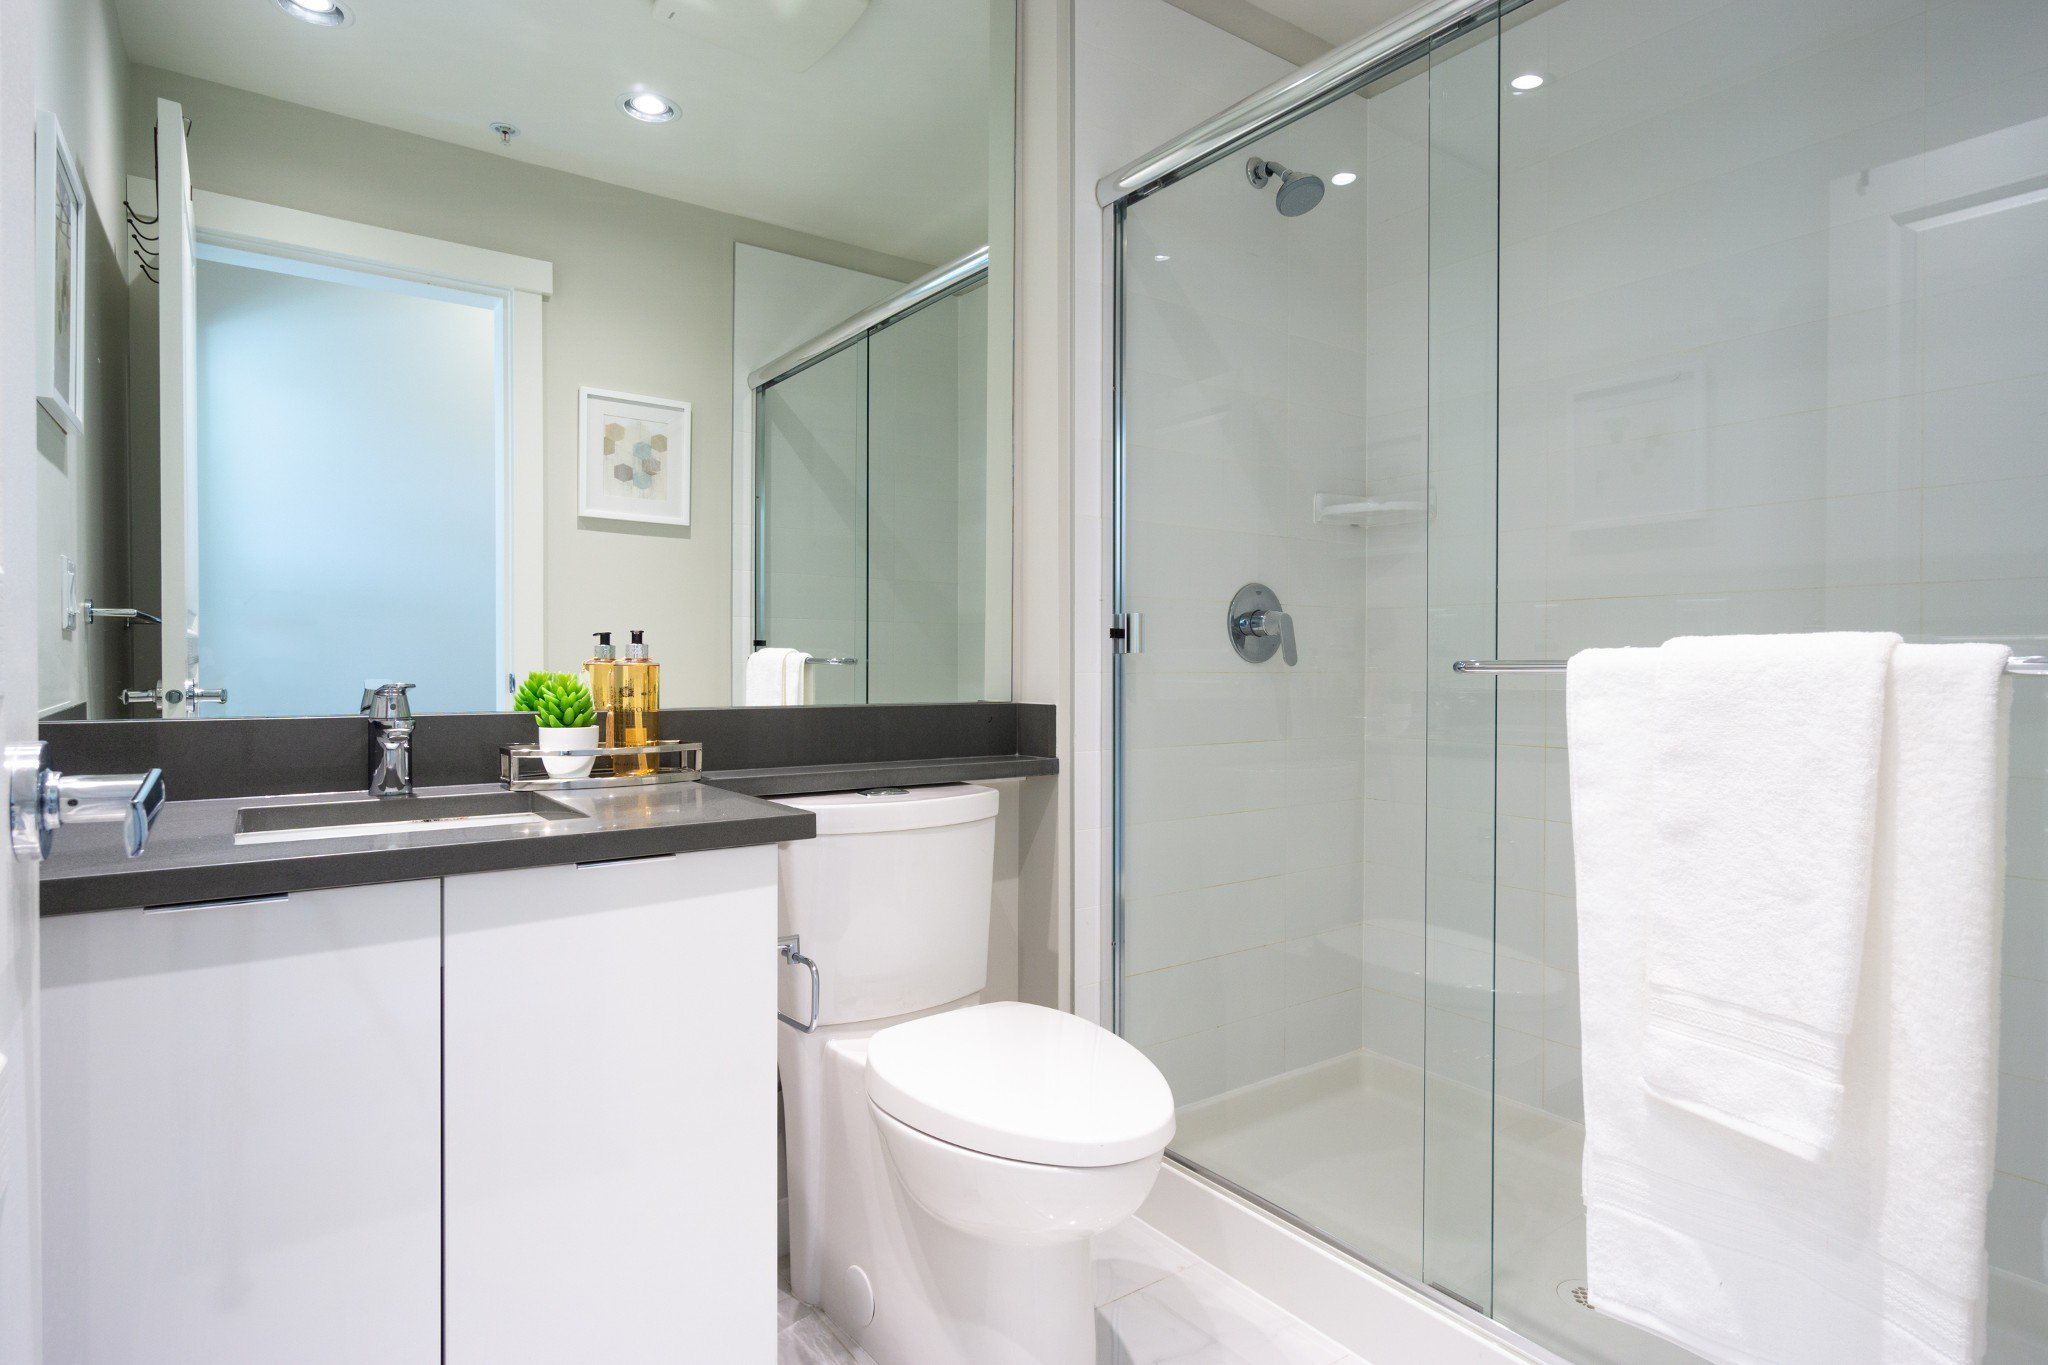 """Photo 24: Photos: 303 9311 ALEXANDRA Road in Richmond: West Cambie Condo for sale in """"ALEXANDRA COURT"""" : MLS®# R2347629"""